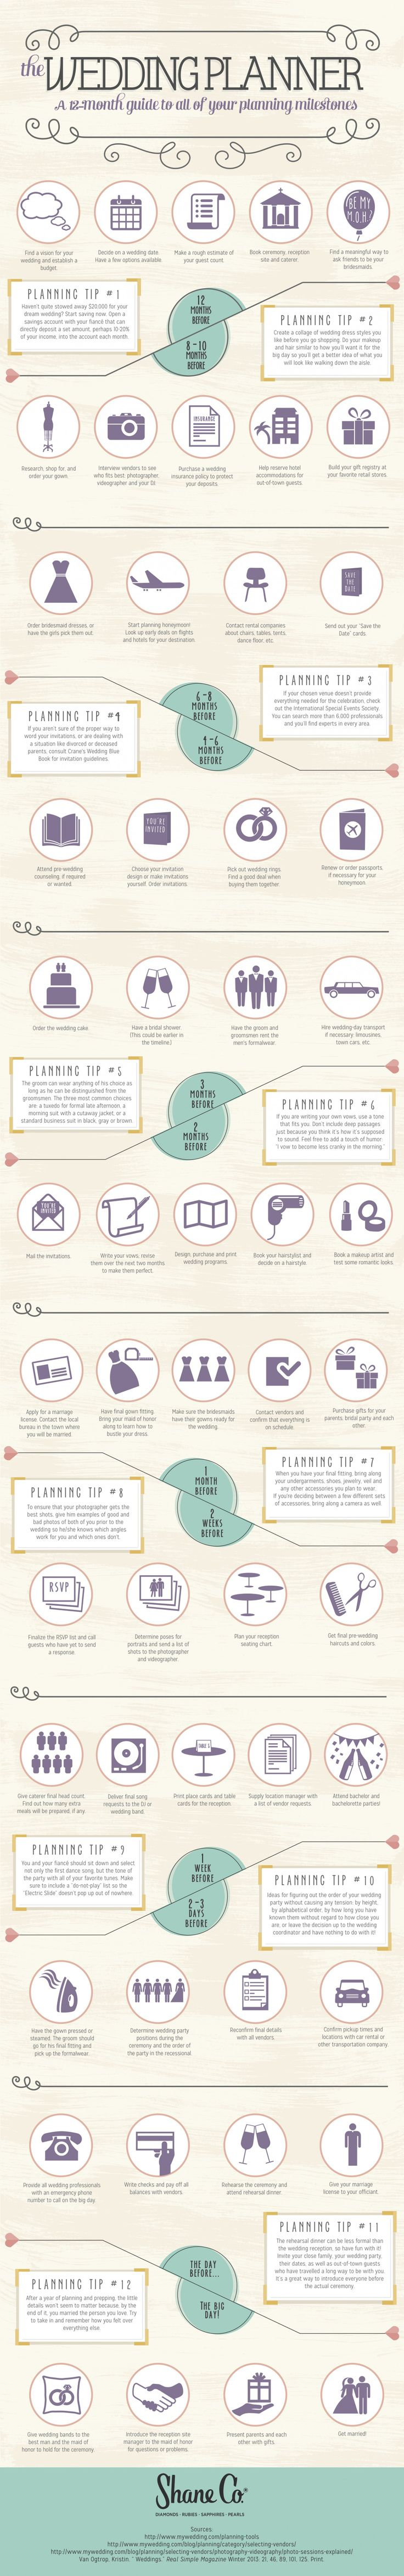 """The Wedding Planner"" infographic. Includes super helpful planning tips!"